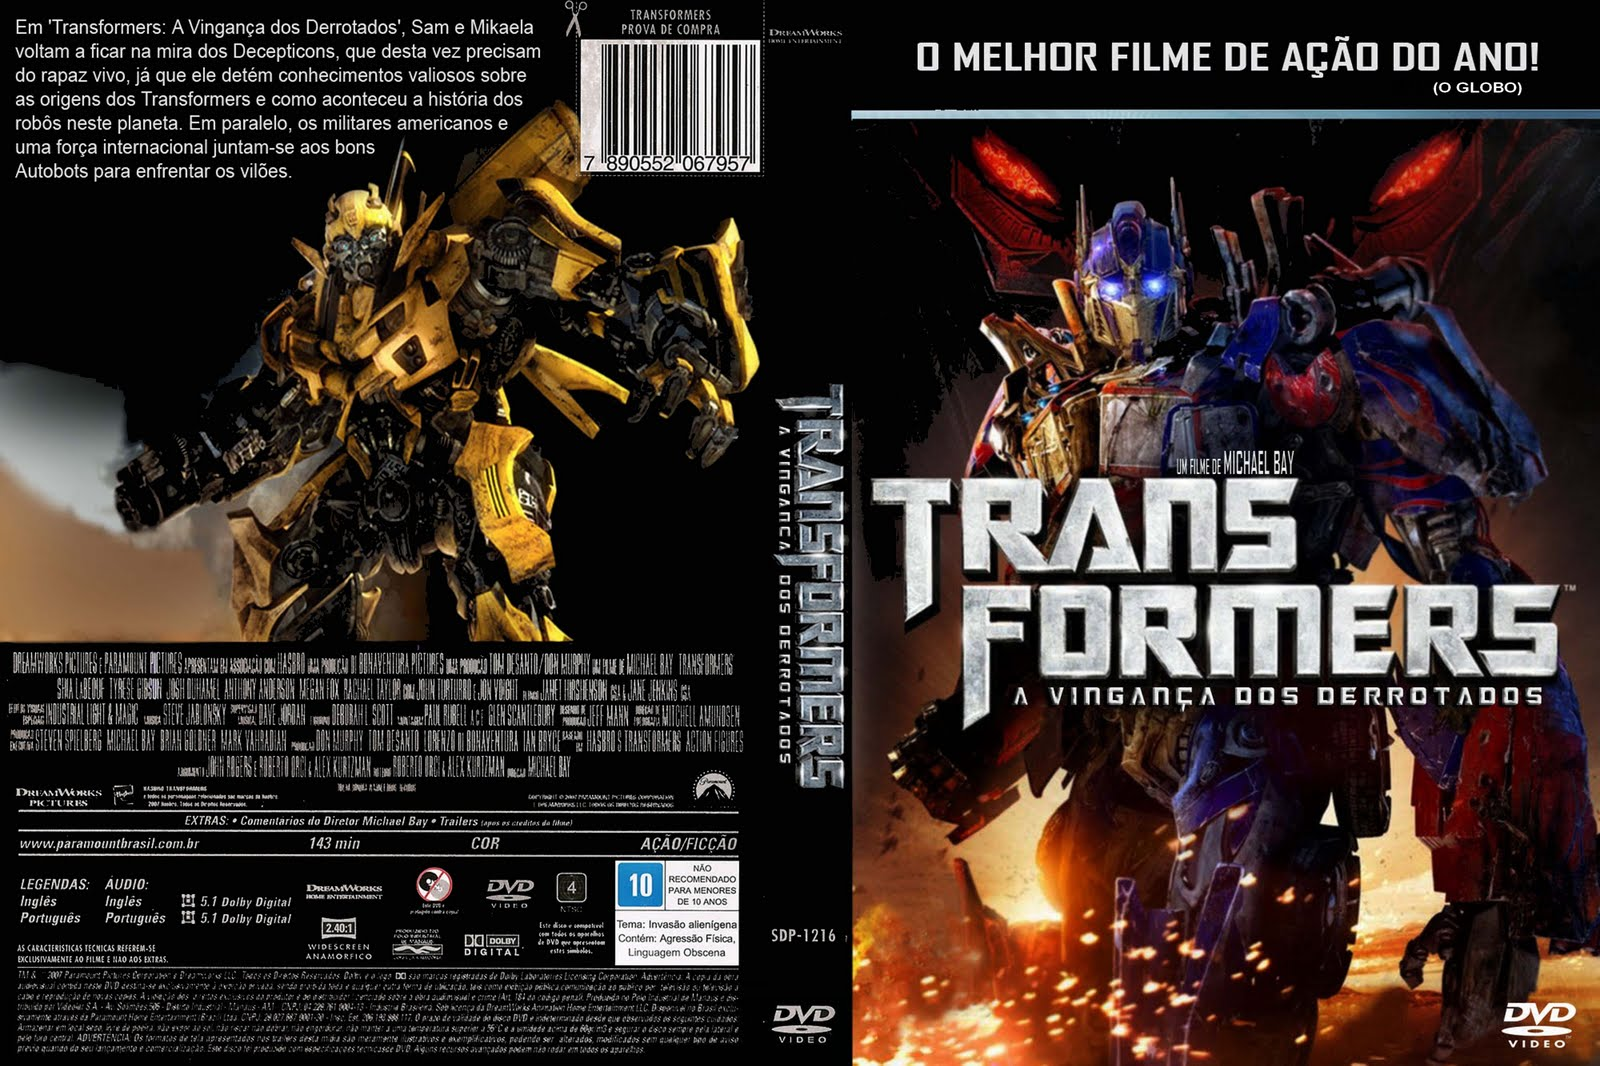 transformers a vingan a dos derrotados 2009 bluray 1080p dublado filmes telecine torrent. Black Bedroom Furniture Sets. Home Design Ideas